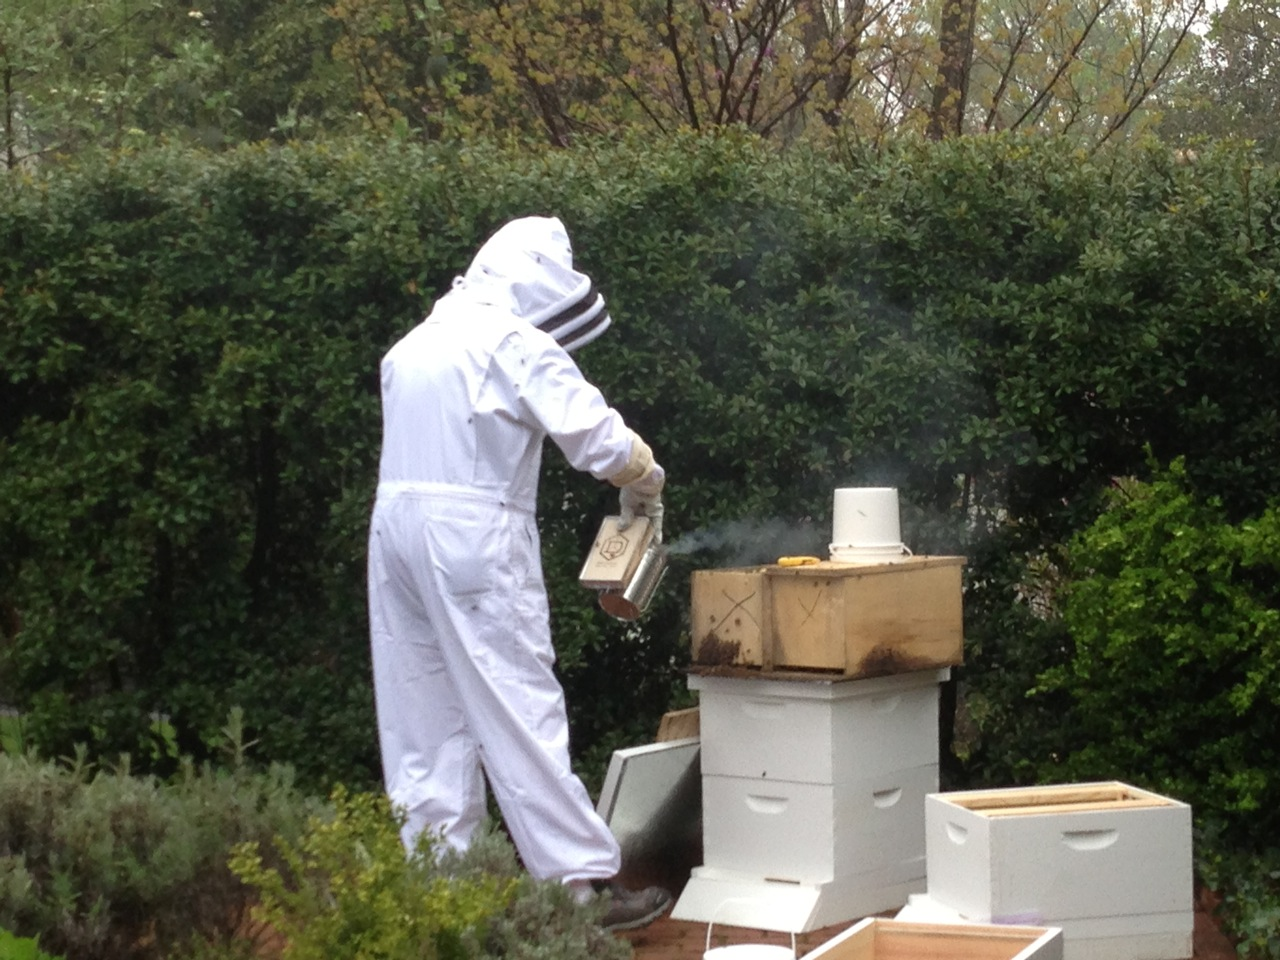 Dr. Brasington uses a smoker to calm the bees.